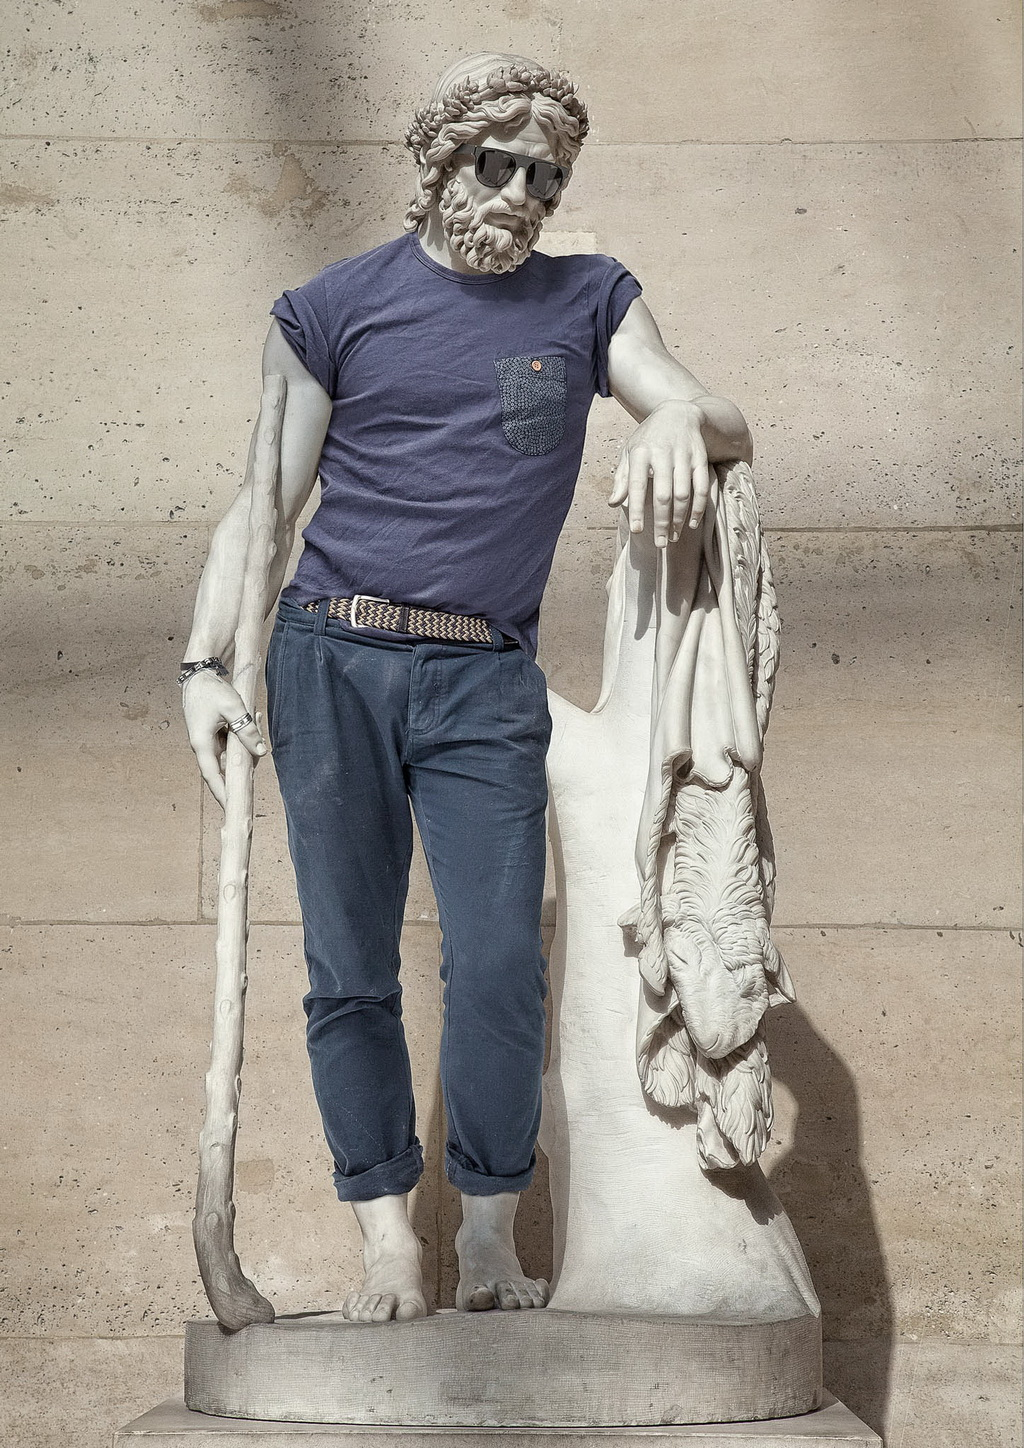 ancient-greek-statue Ancient Greeks wearing hipster clothes, courtesy of Photoshop Exposure